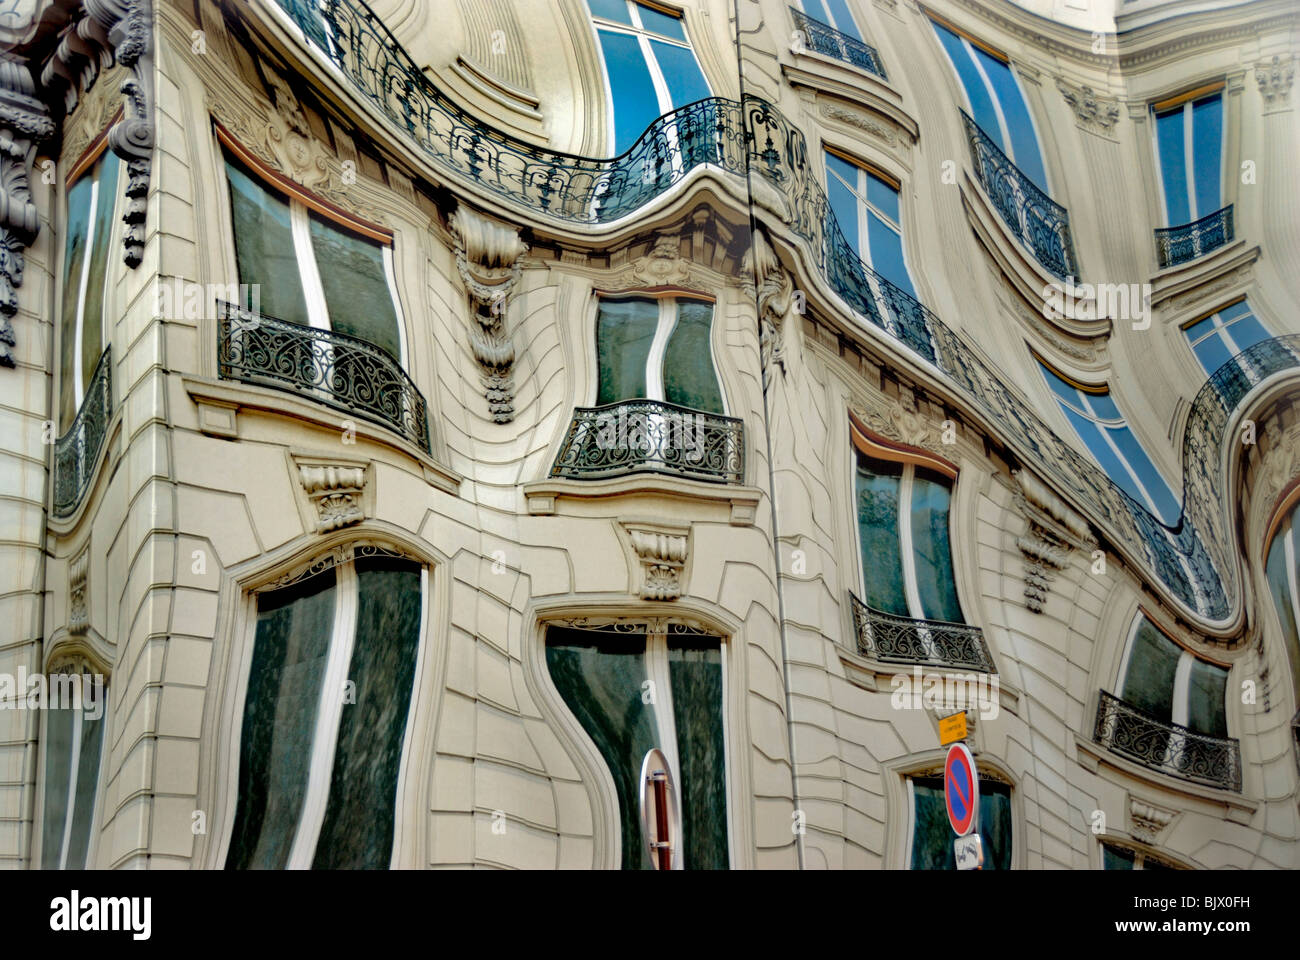 Paris, France, Surrealist Public Art on 'Bleecker Corp.' Headquarters Building, - Stock Image